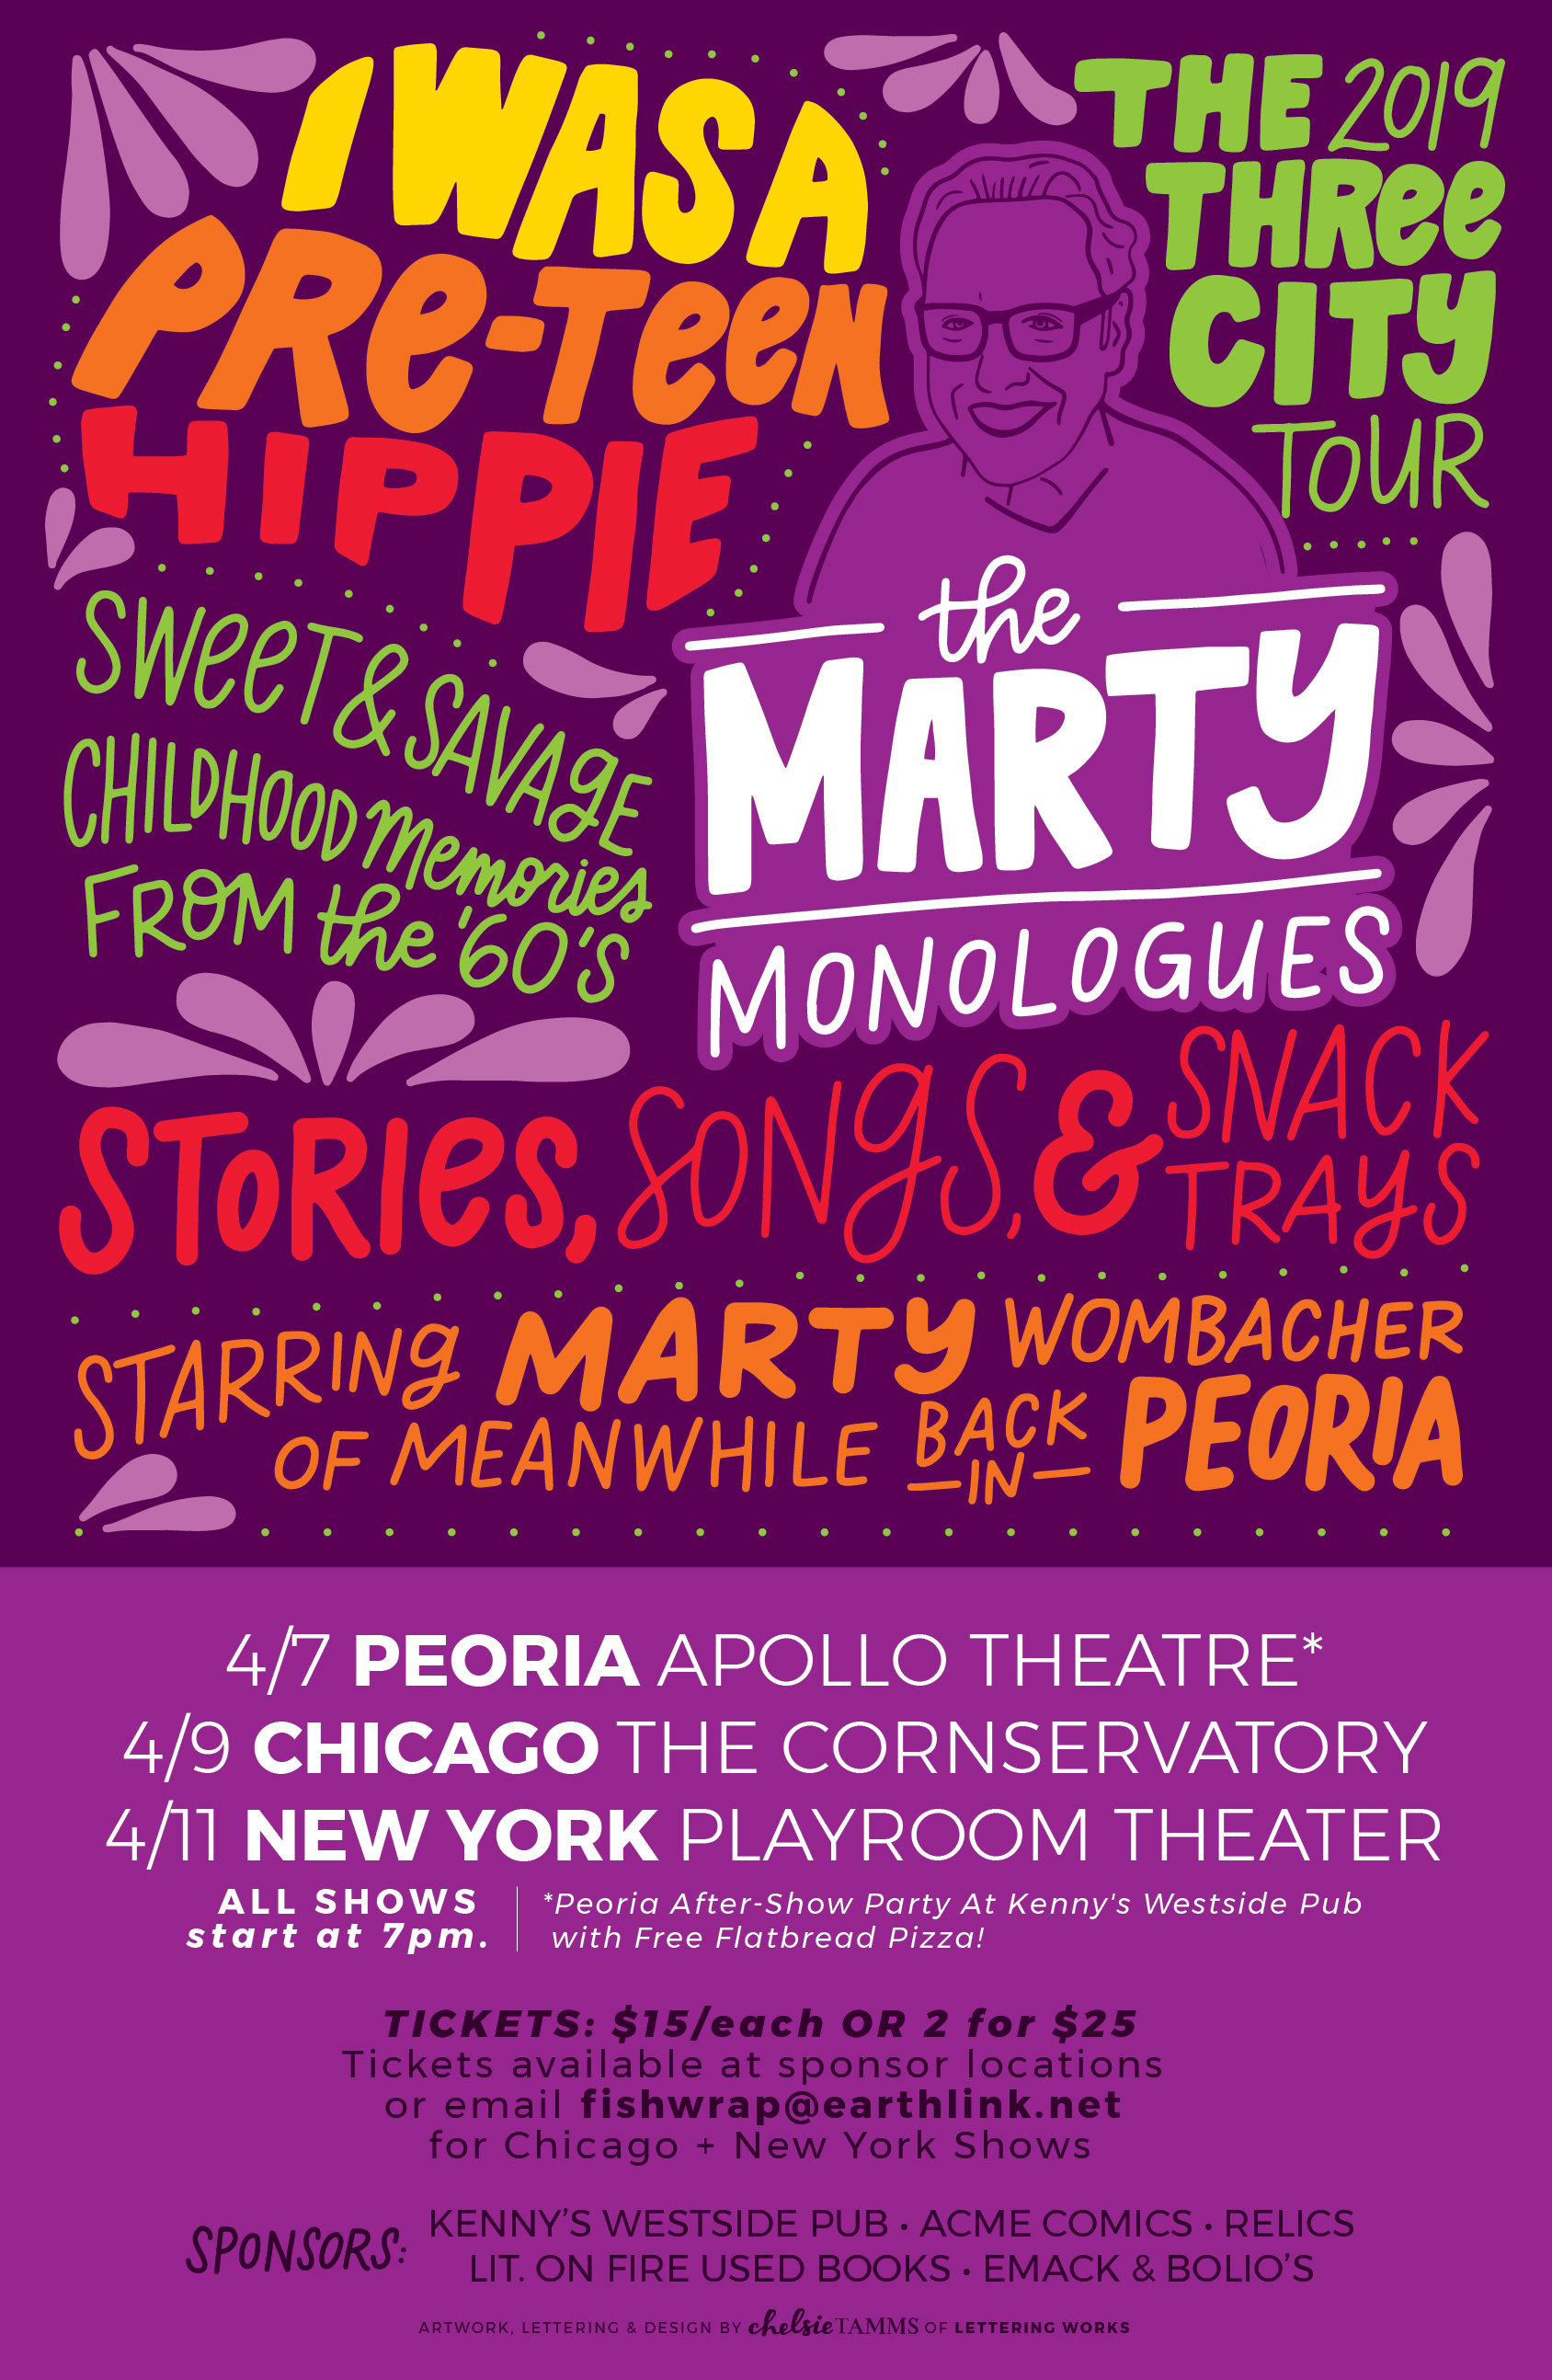 The Marty Monologues - 60s Theme - Poster Design